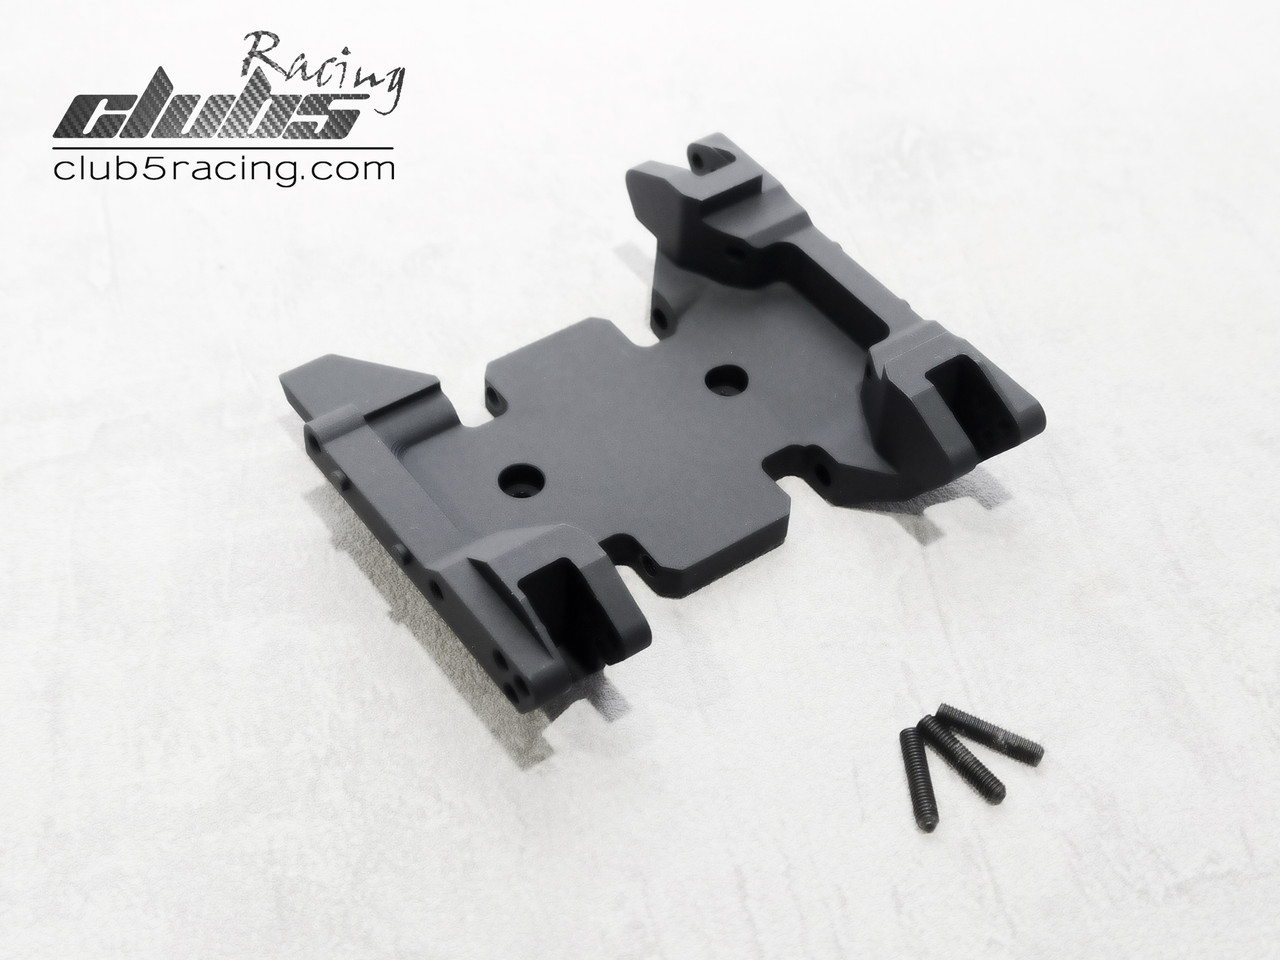 Lightweight and Fine Workship Center Skid Plate Aluminum Alloy Center Skid Plate Mount with Base Link Rod for Axial SCX10 1//10 RC Car